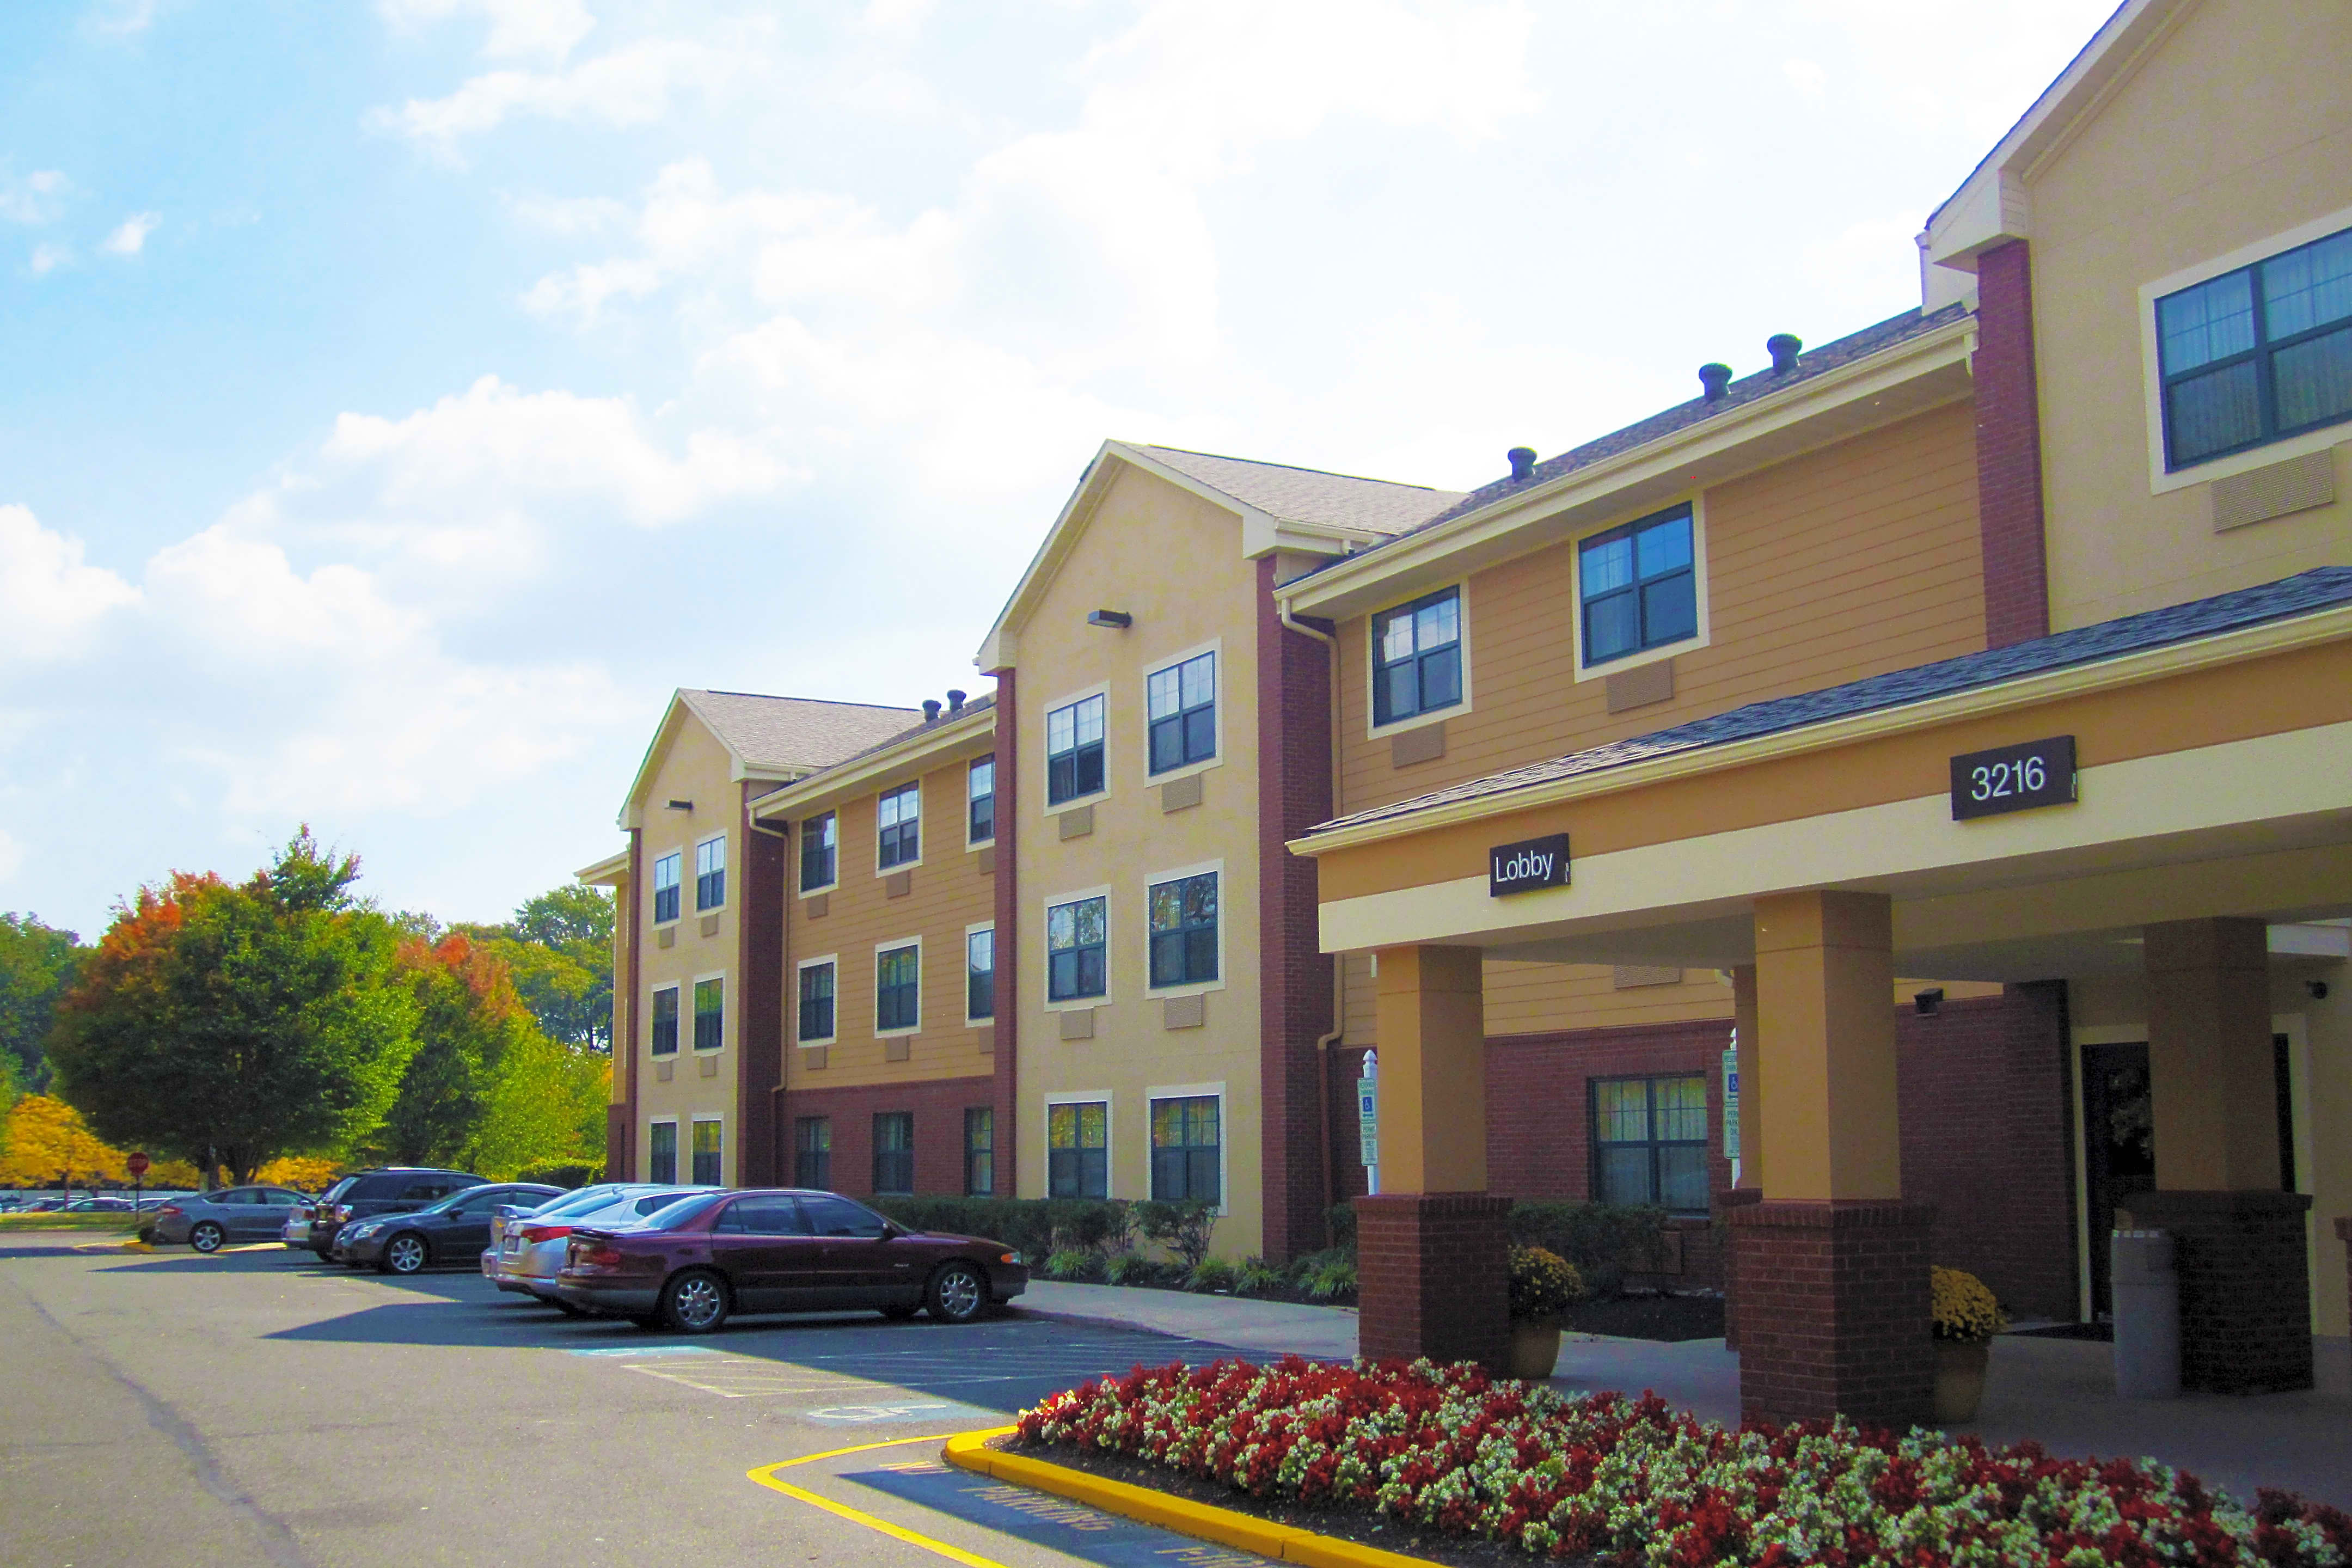 Apartments Near Holy Family Furnished Studio - Philadelphia - Bensalem for Holy Family University Students in Philadelphia, PA